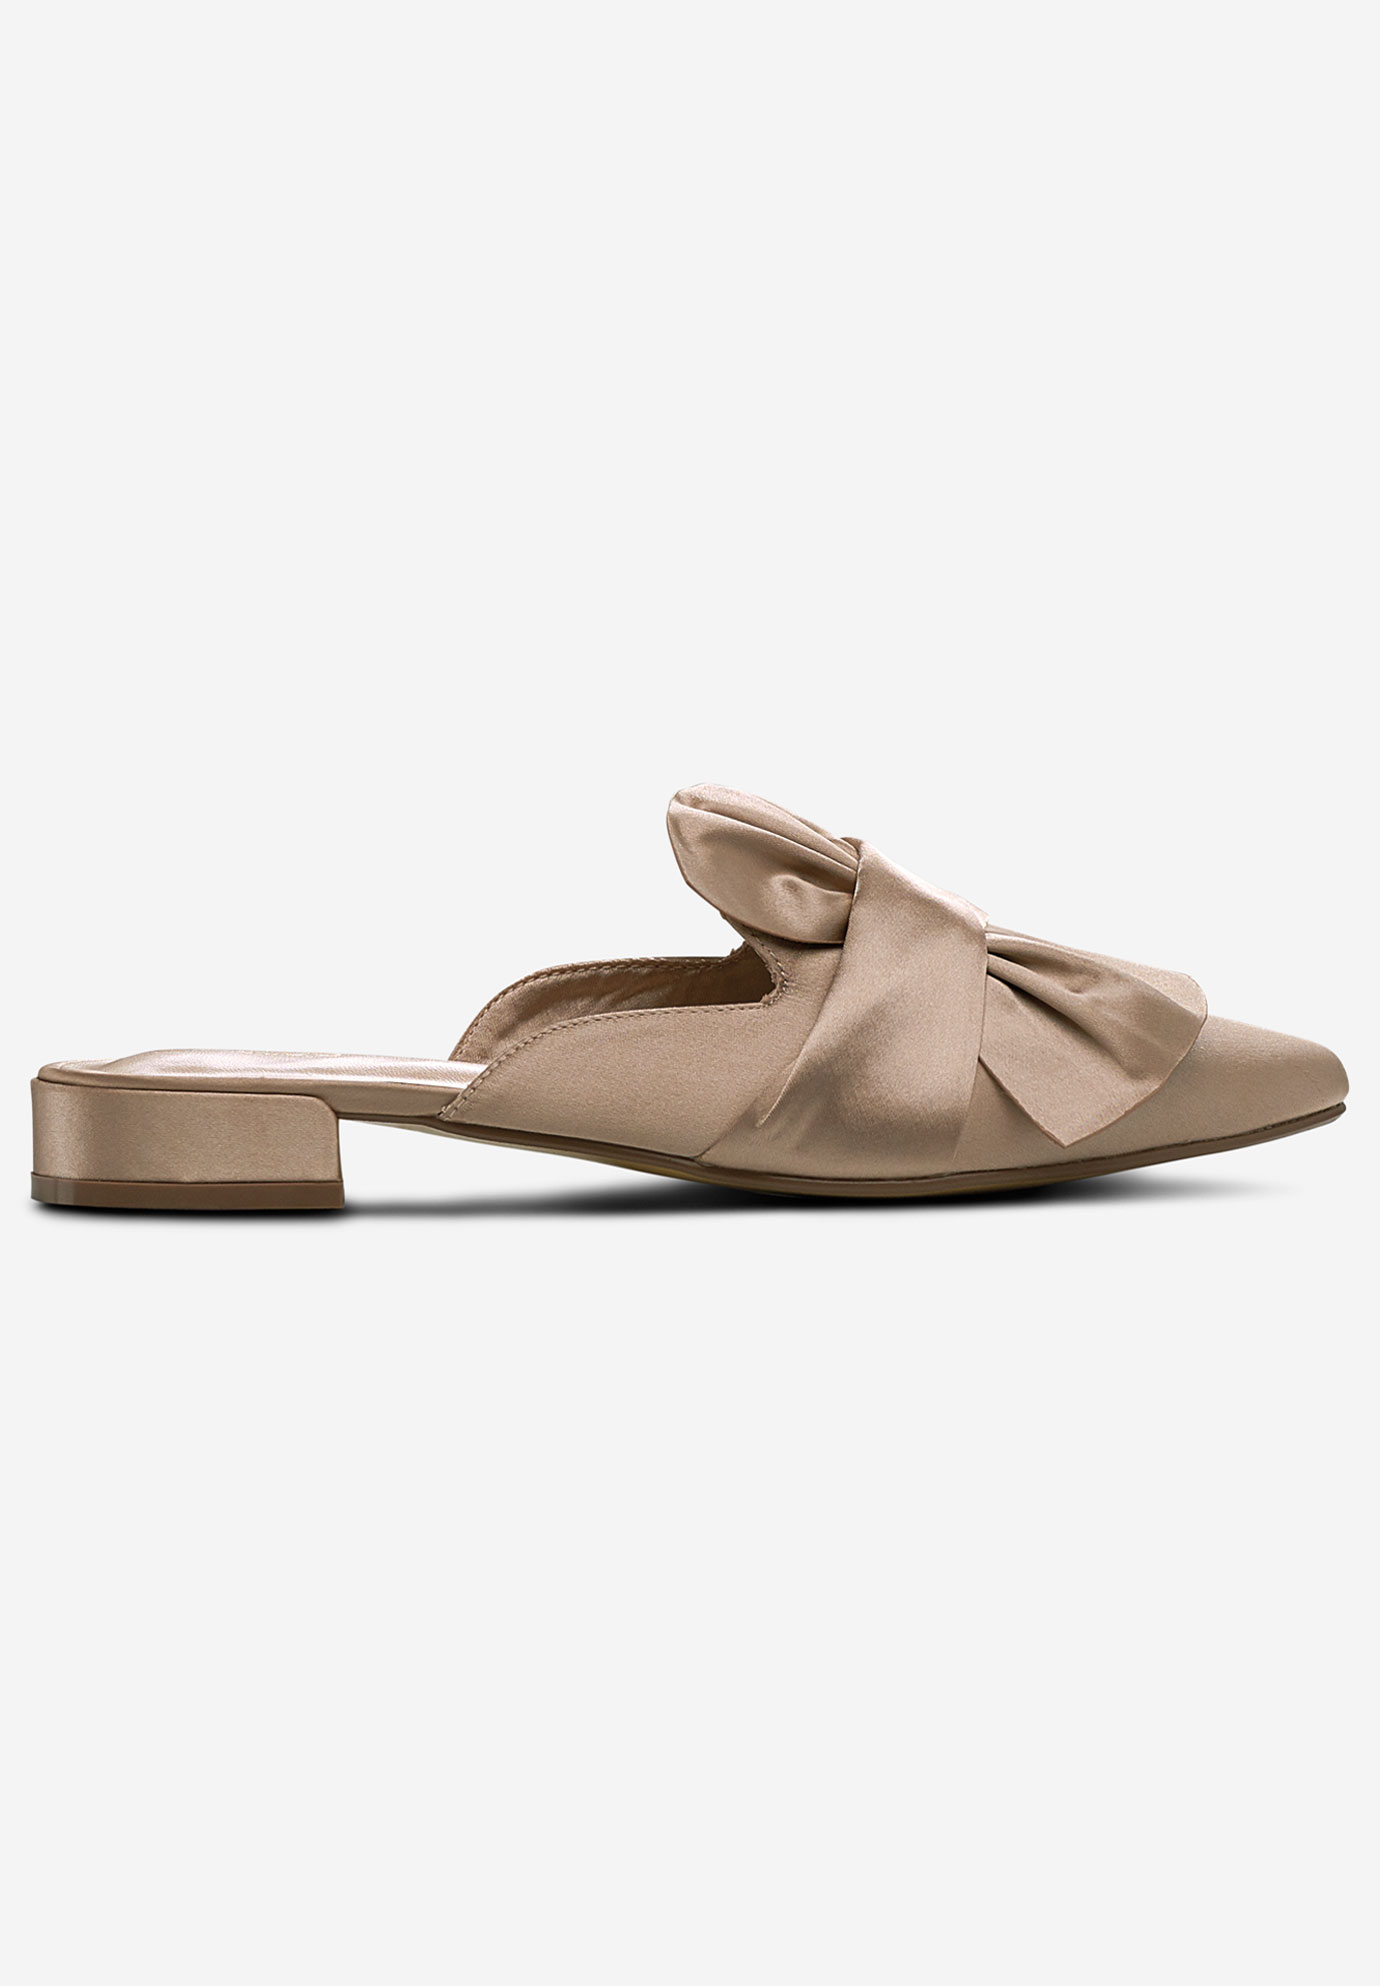 Satin Bow Mule Flats,